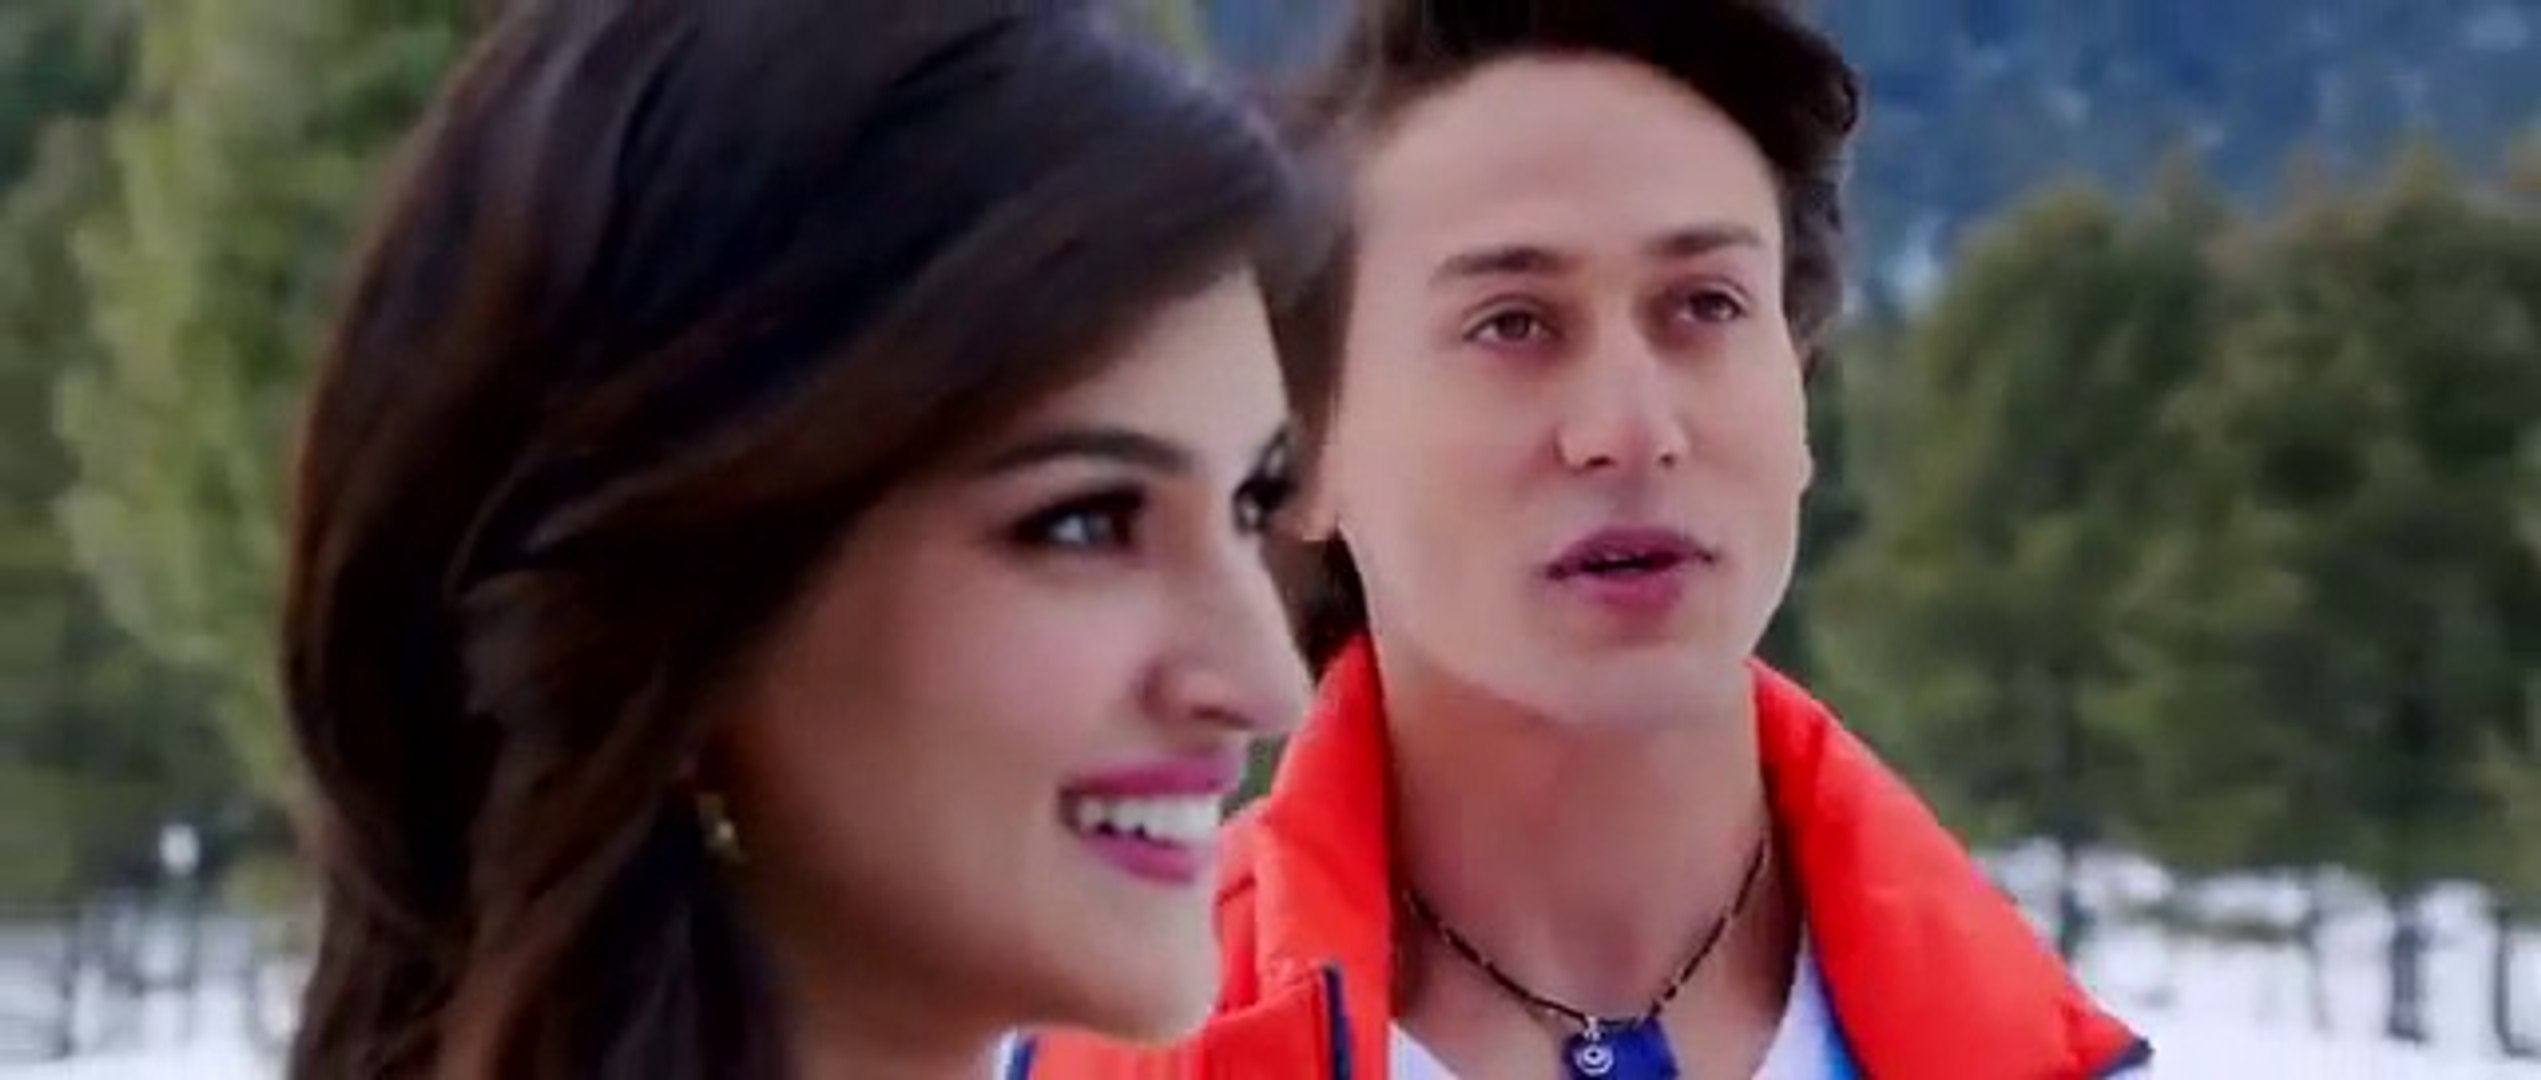 Rabba Rabba Mere-Full HD Video Song [Heropanti Movie] Tiger Shroff, Kriti  Sanon - video dailymotion